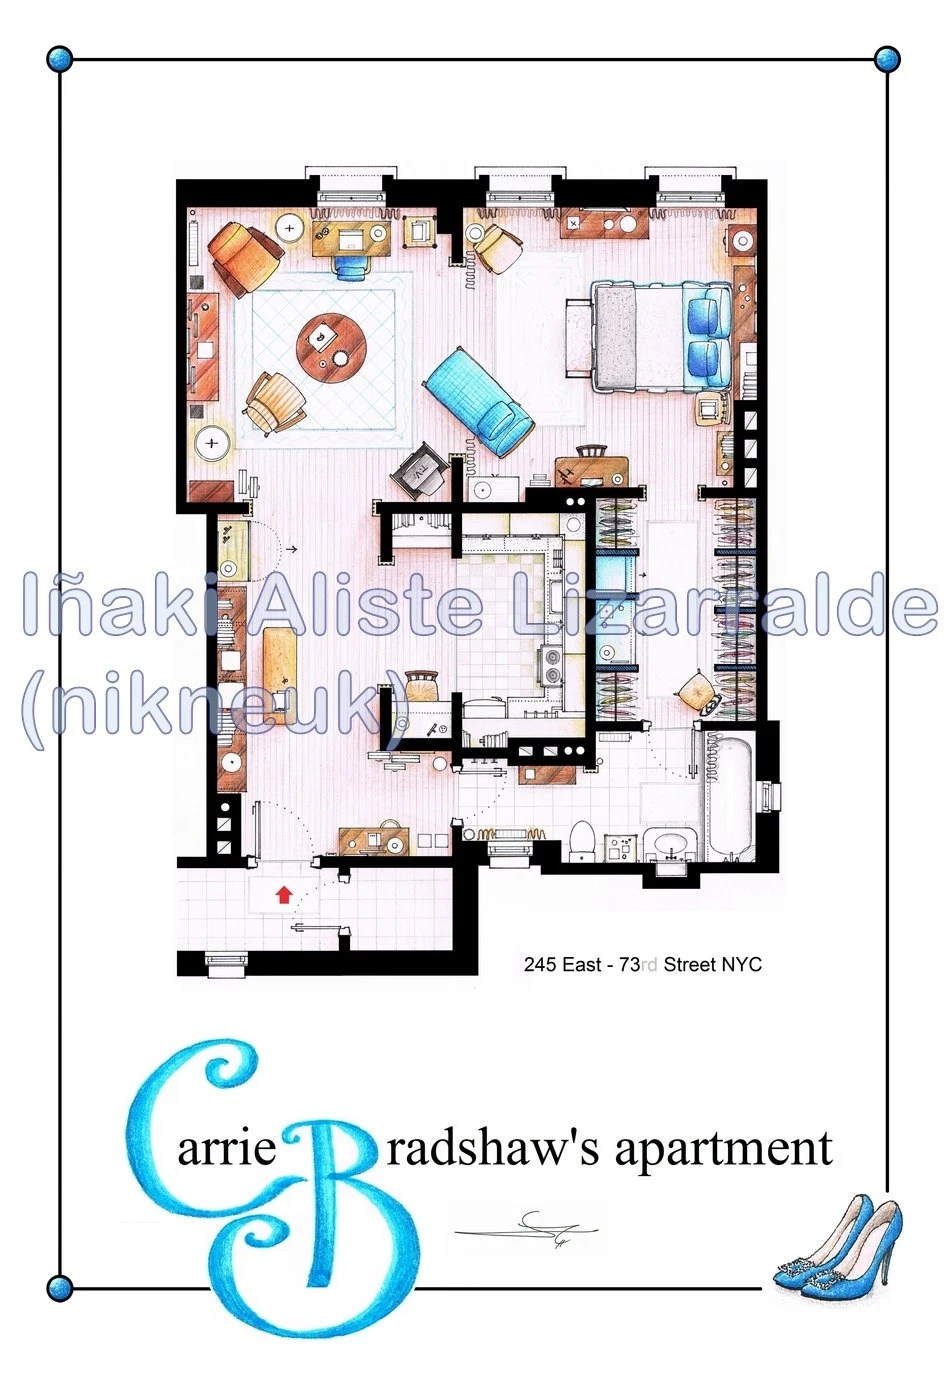 Carrie Bradhsaw's Apartment Floorplan (BIG)